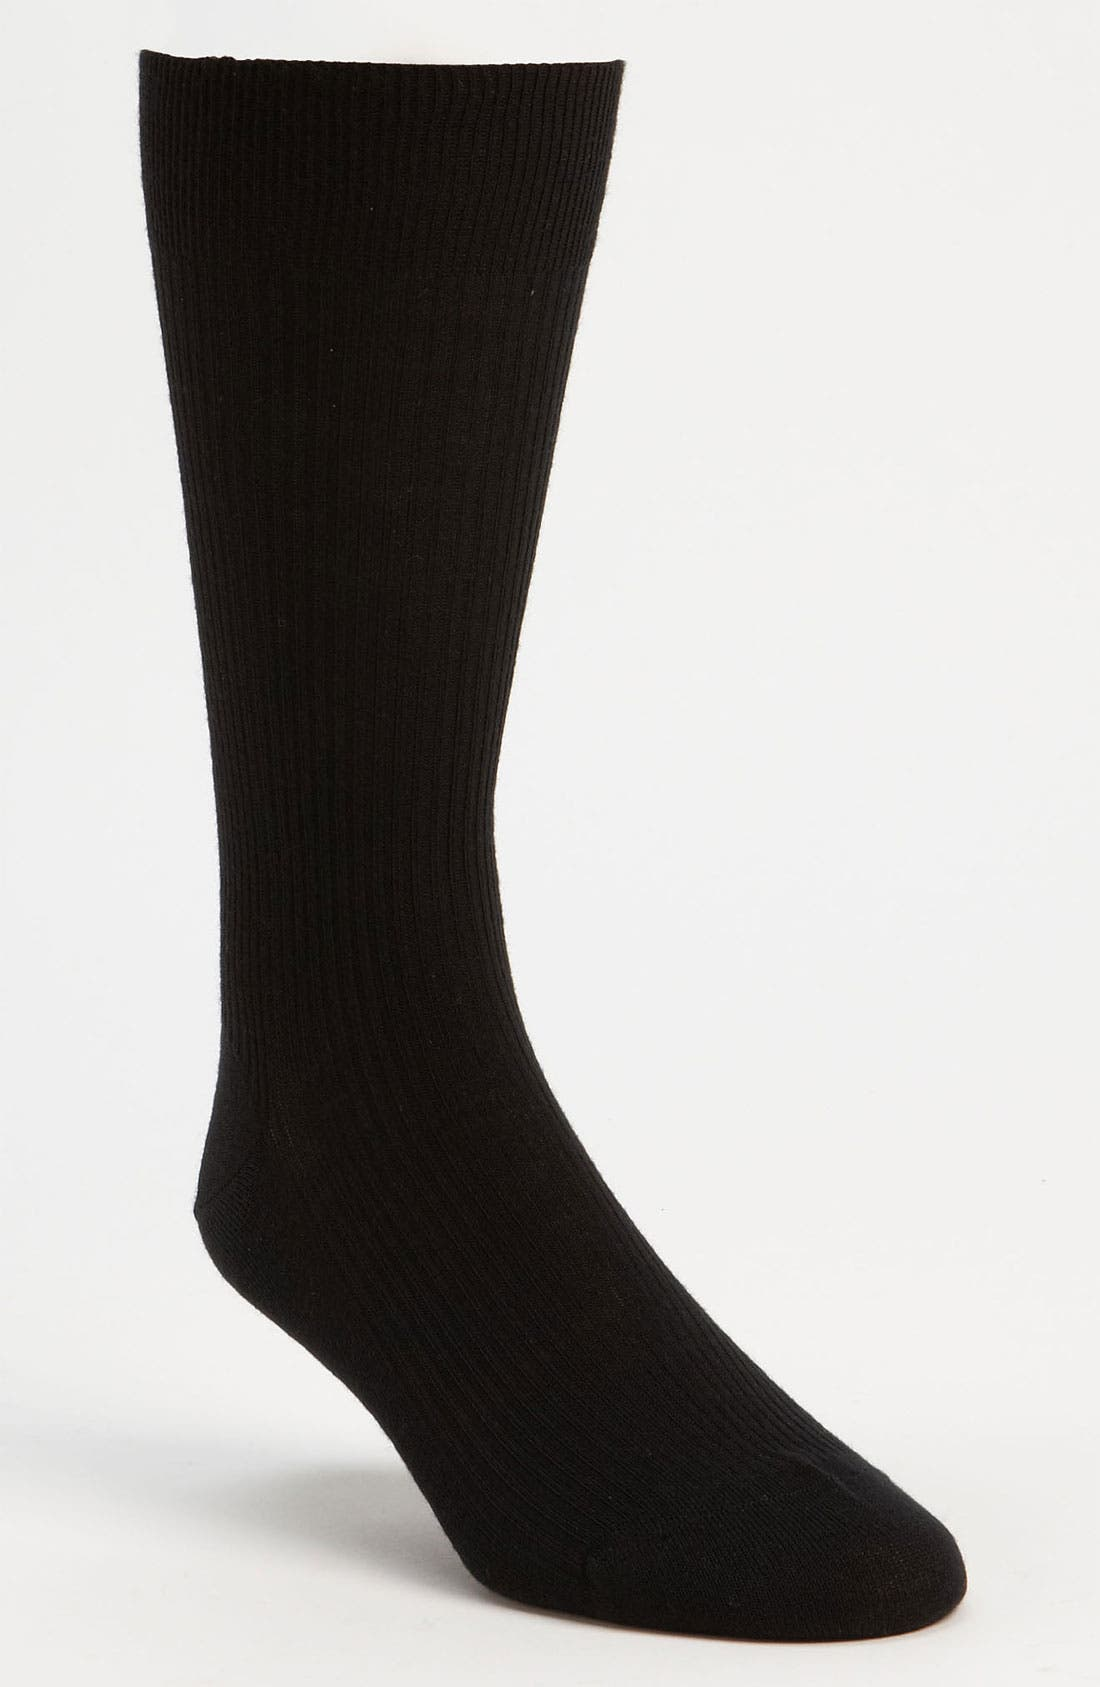 Alternate Image 1 Selected - Pantherella Merino Wool Mid Calf Dress Socks